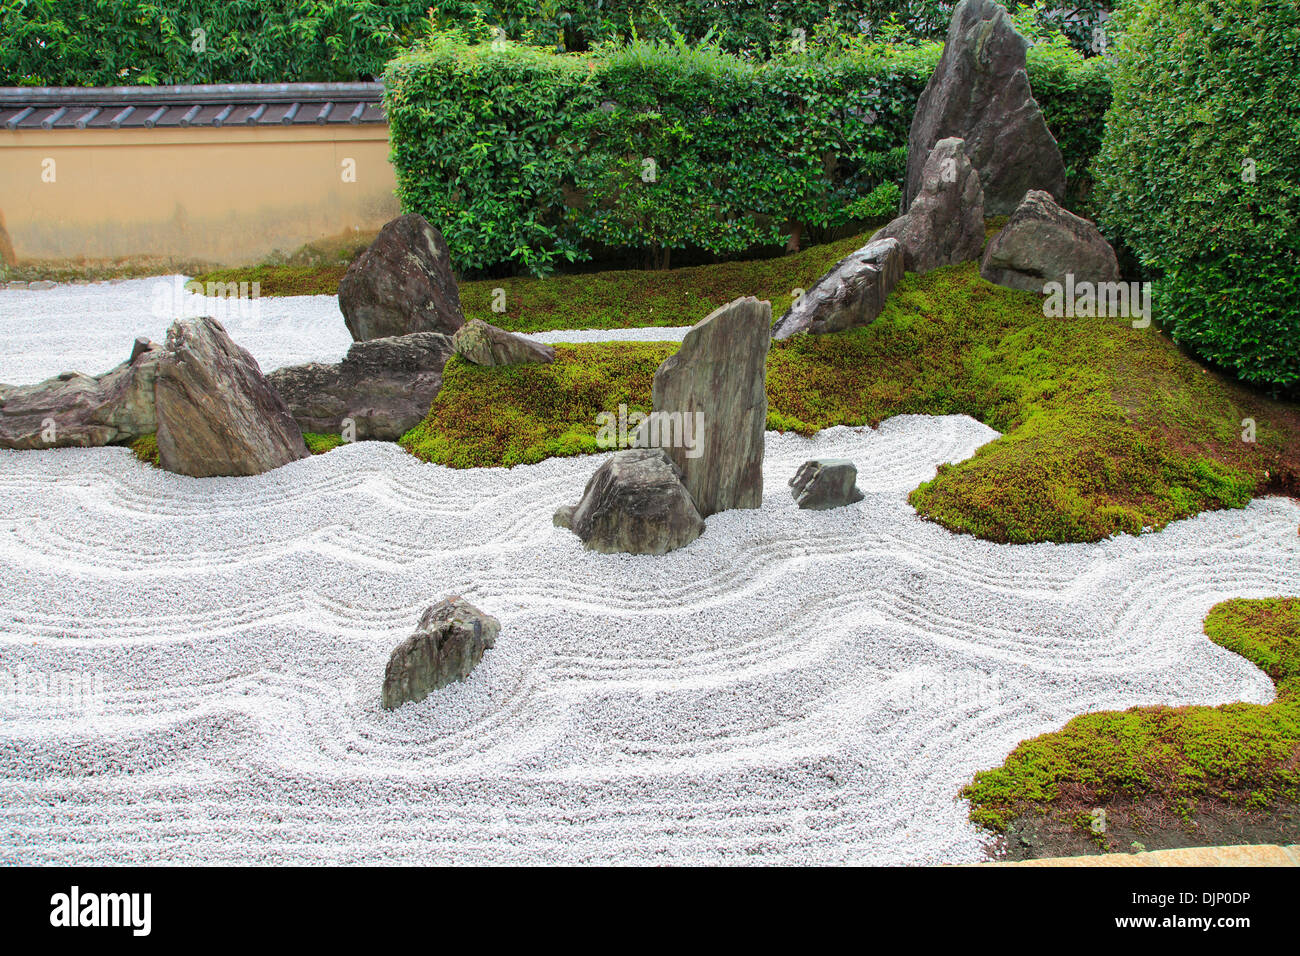 Japan, Kyoto, Daitokuji Temple, Zuiho-in, Garden of Solitary Sitting, - Stock Image